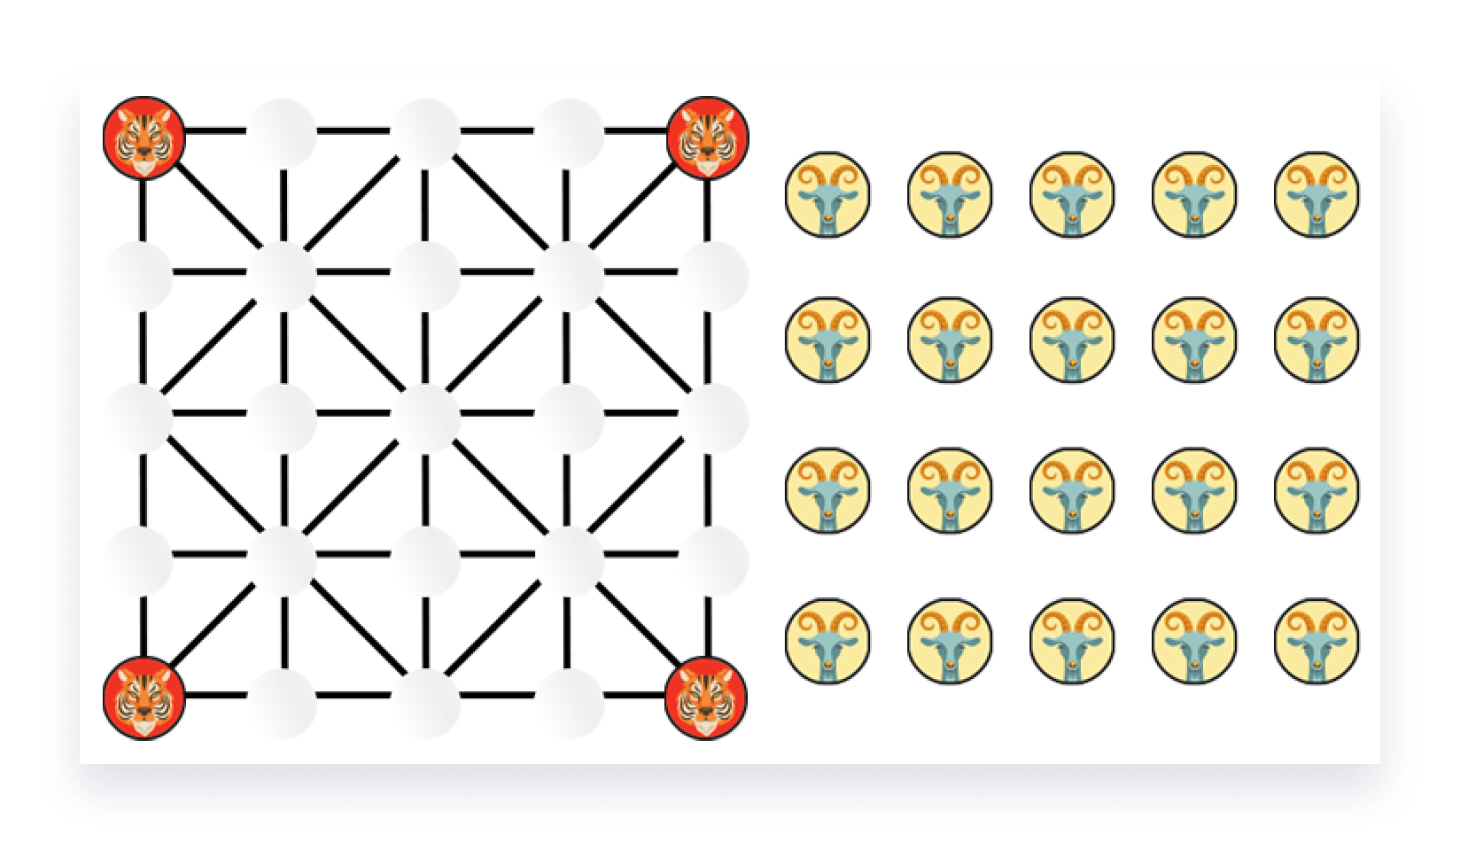 The initial board configuration for Bagh Chal where the tigers are placed at the four vertices of a 5x5 grid and 20 goats are outside the board.